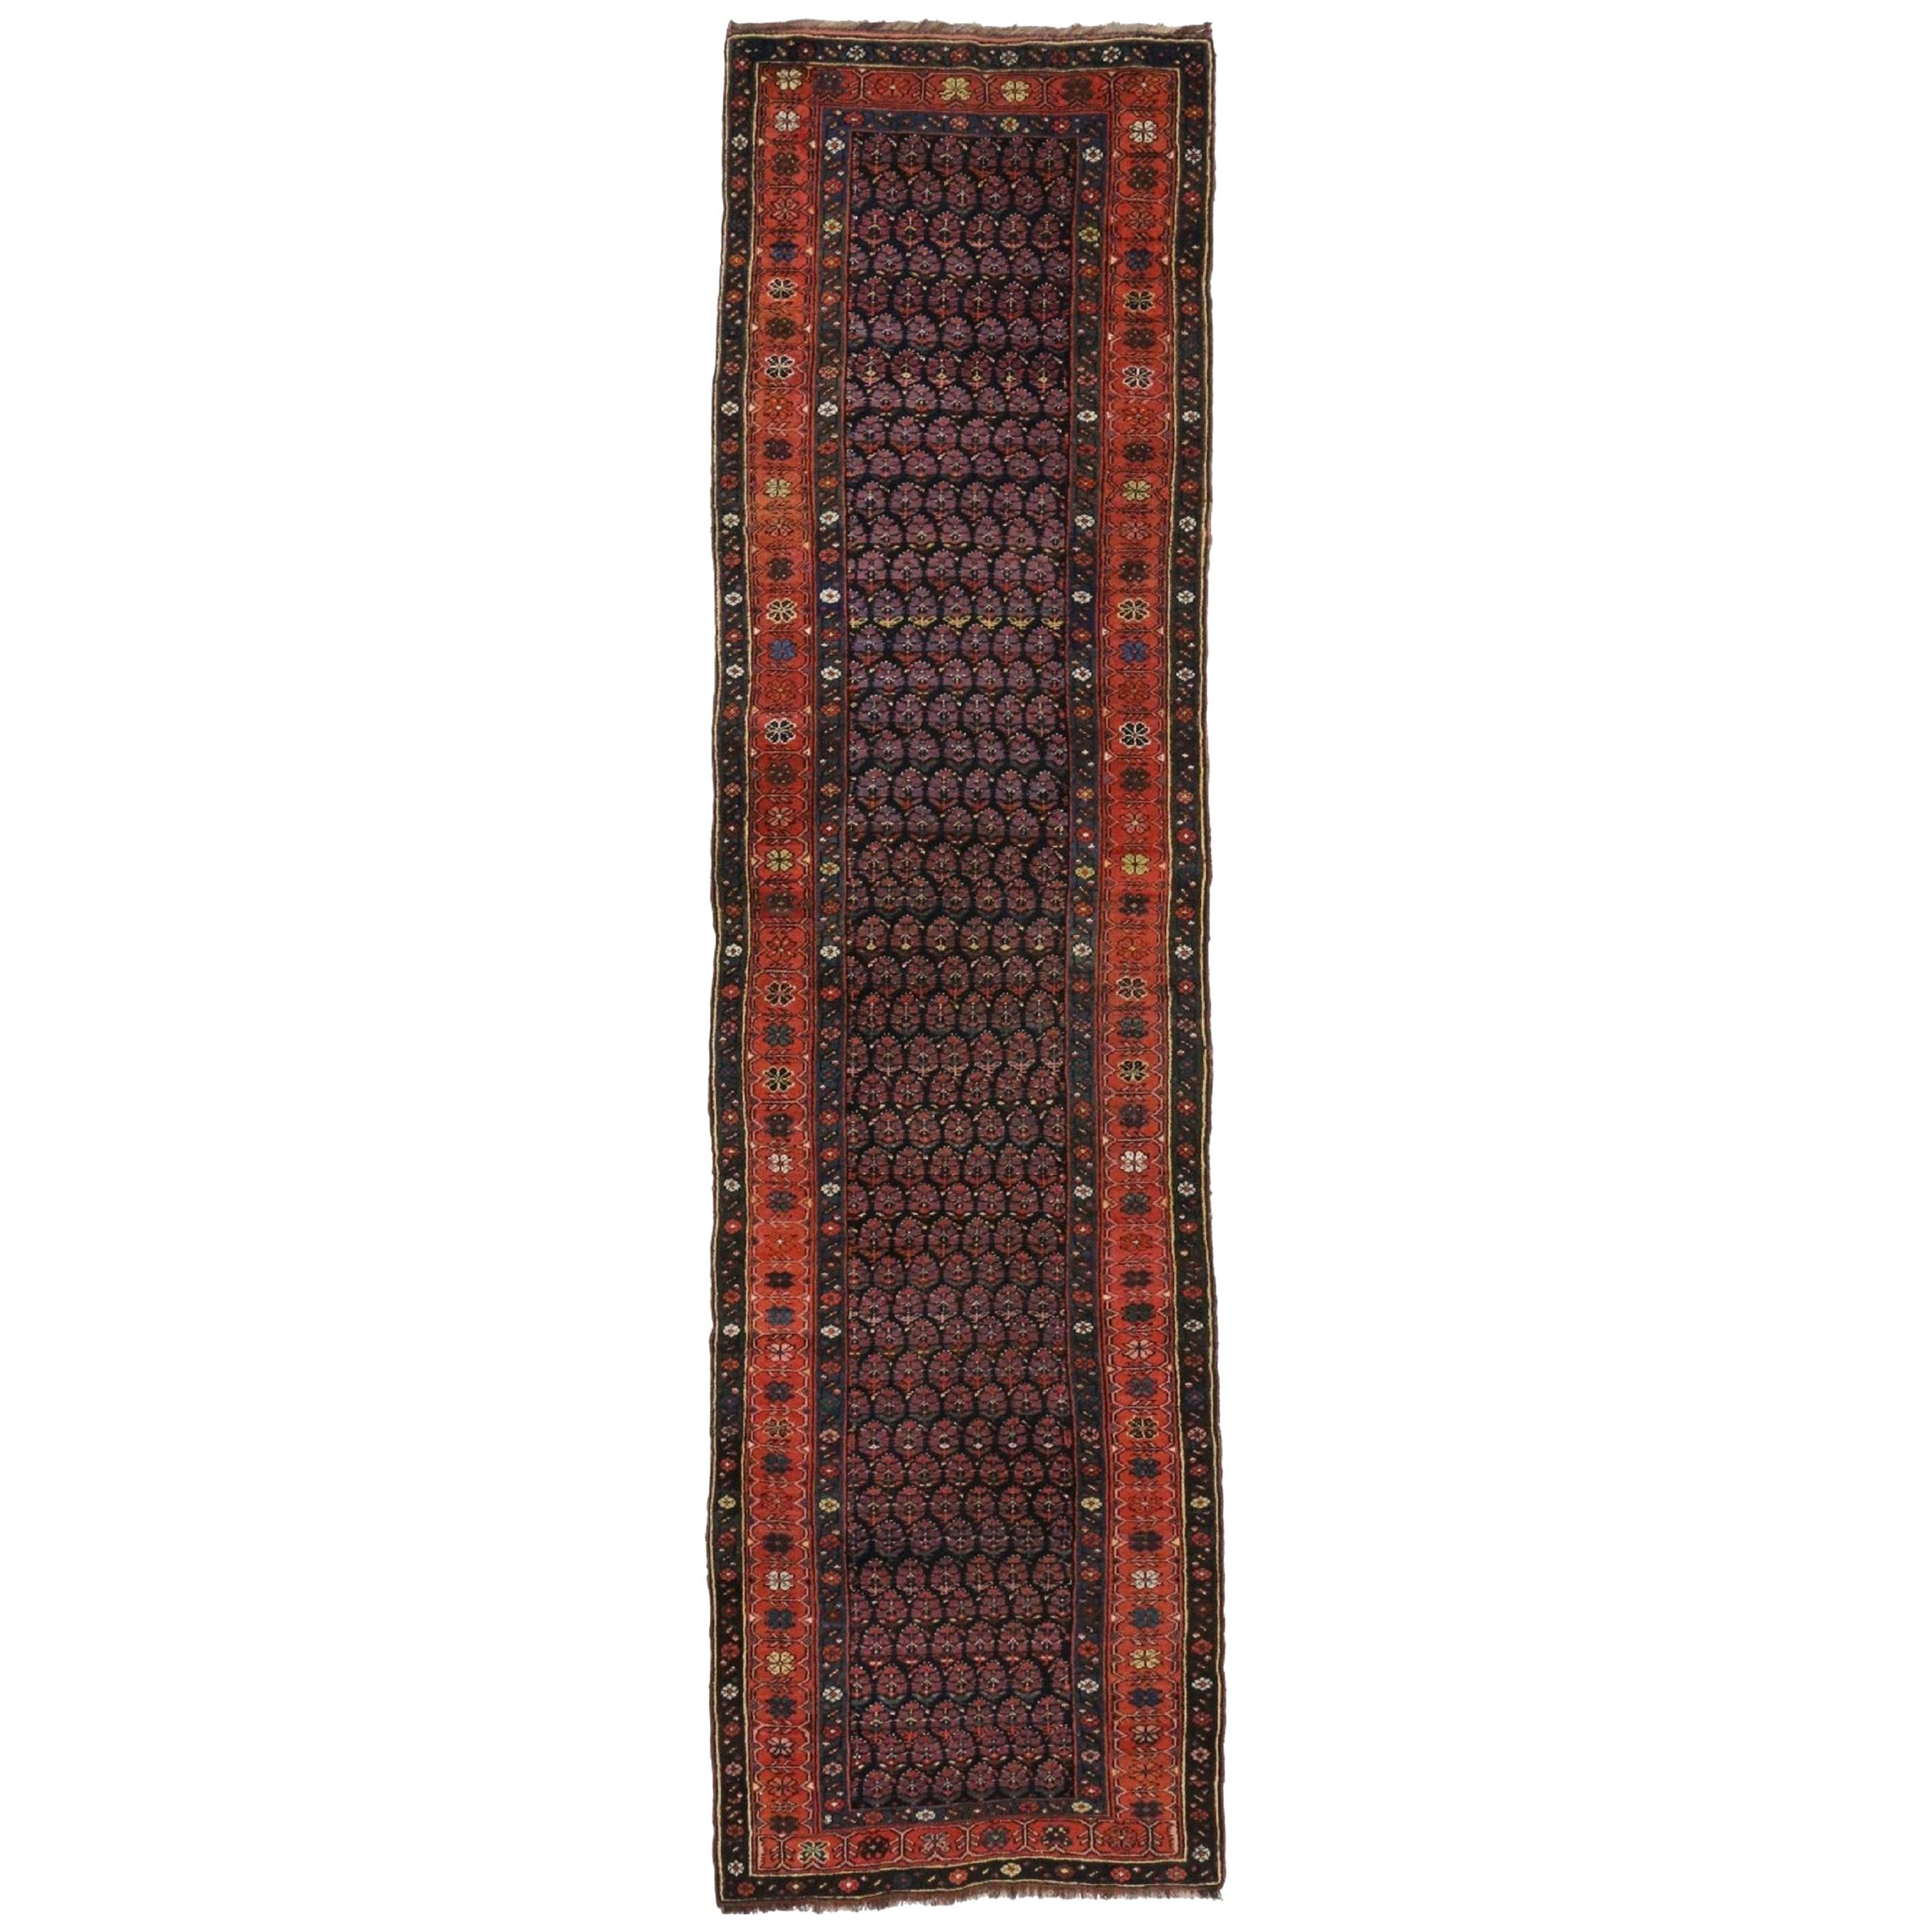 Antique Persian Kurdish Runner with Boteh Design, Hallway Runner